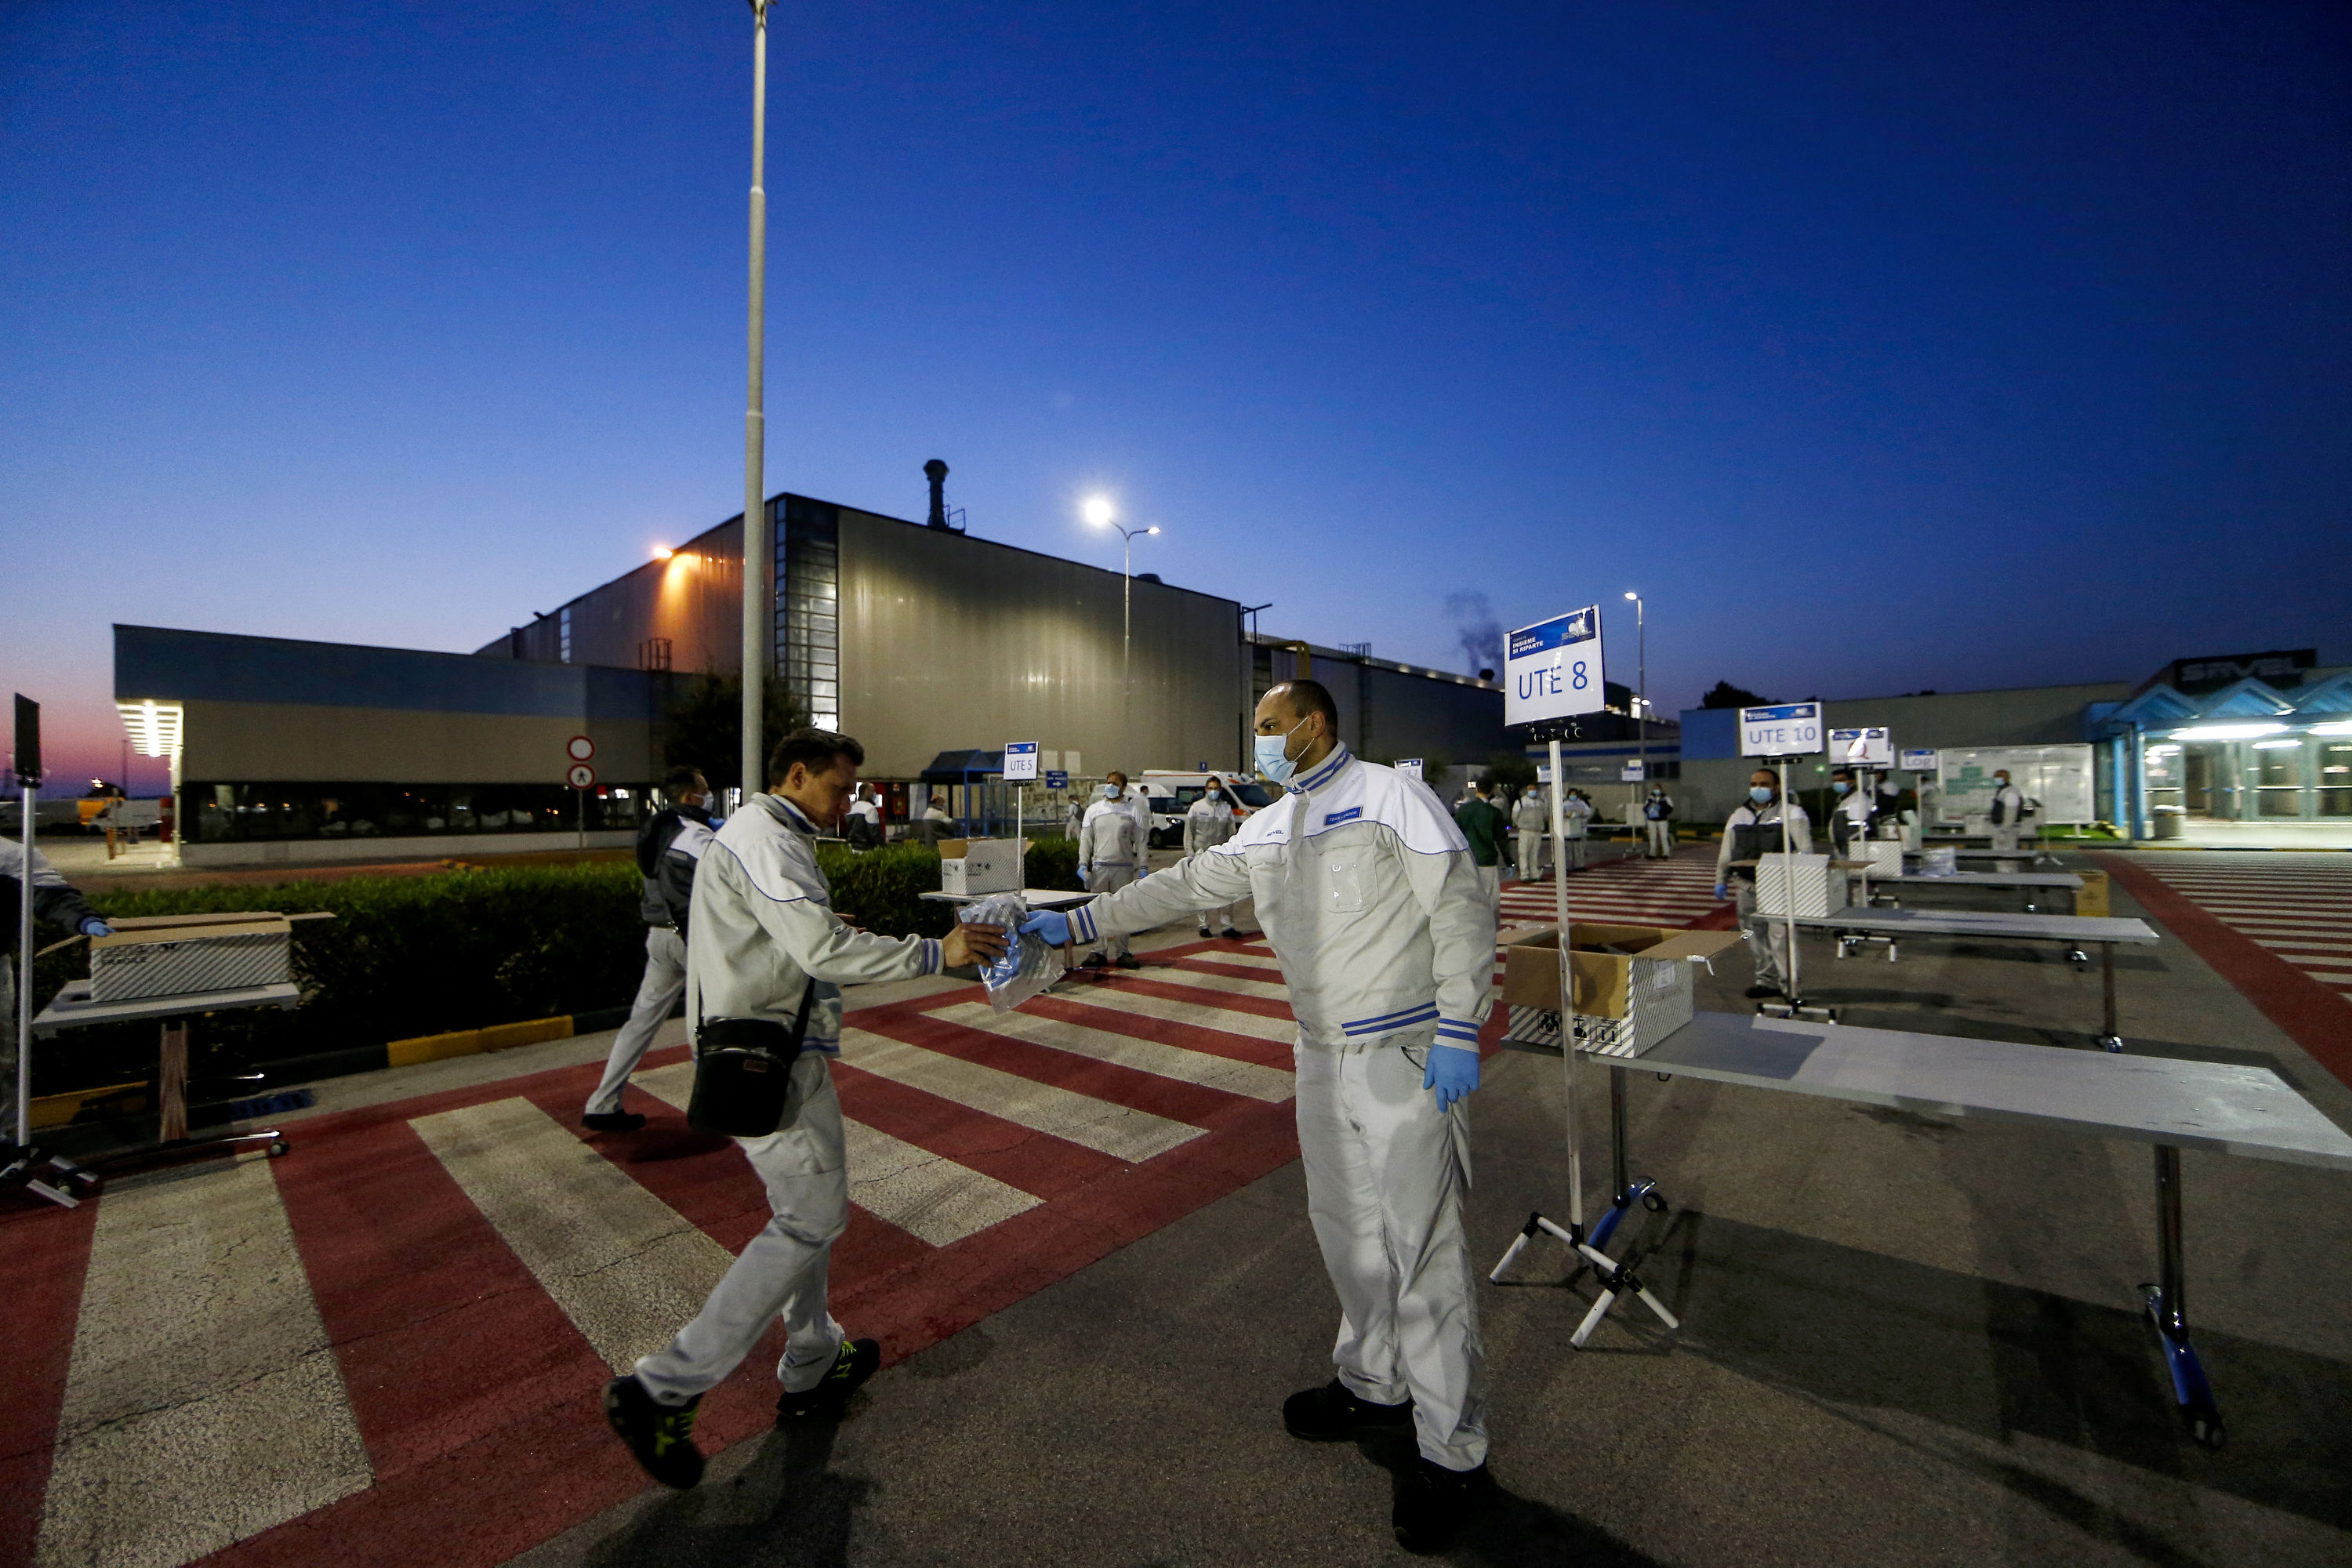 As workers return to work at Fiat's Italian plant, safety kits with rubber gloves and face masks are being distributed at the entrance. The personal protective gear will help workers avoid transmission of infection at workplace.  (AP)